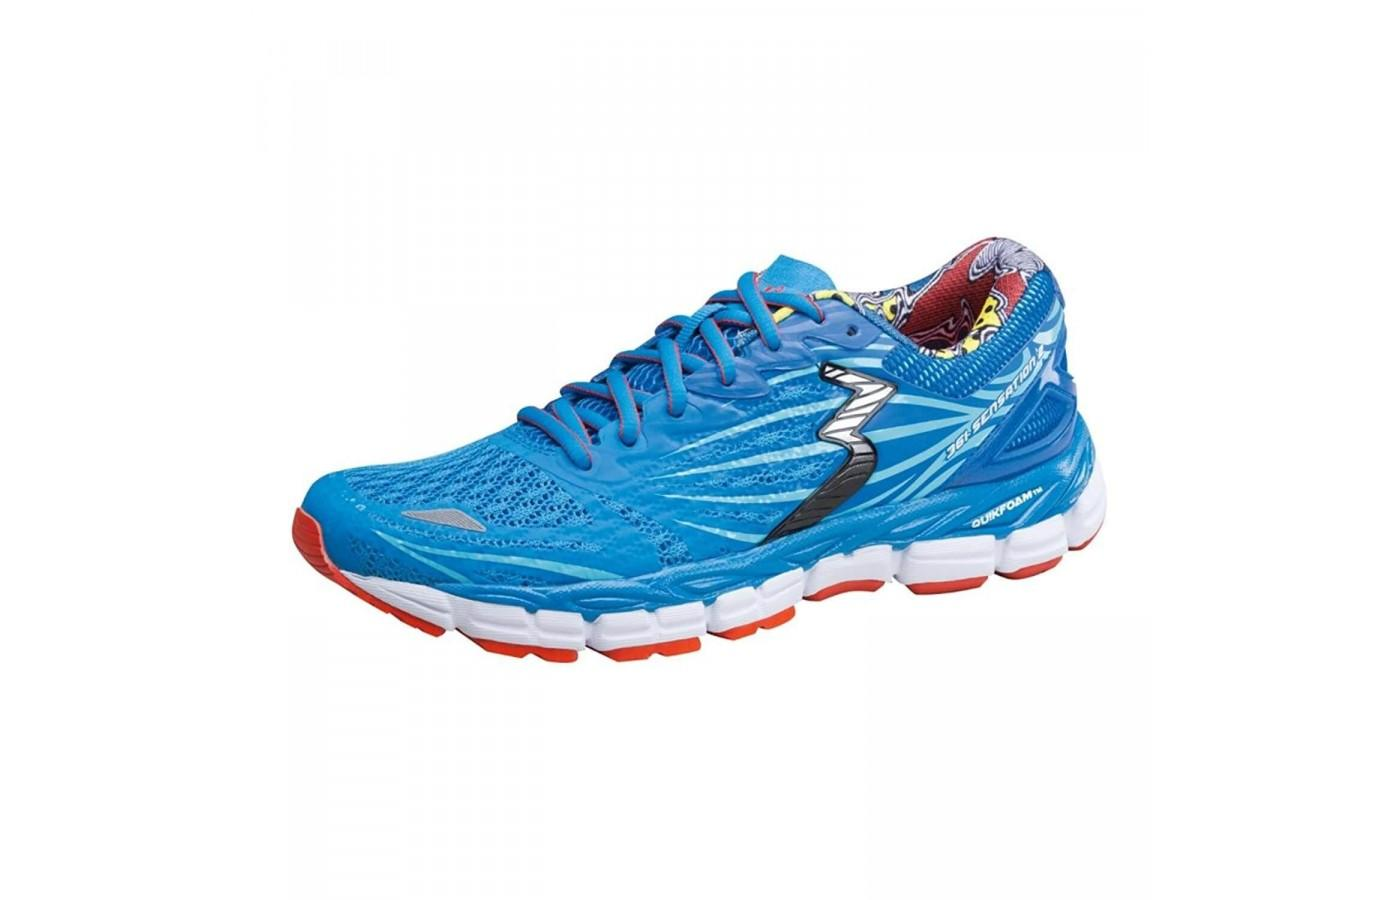 This is a great shoe for beginnings and it offers layers of support for runners.